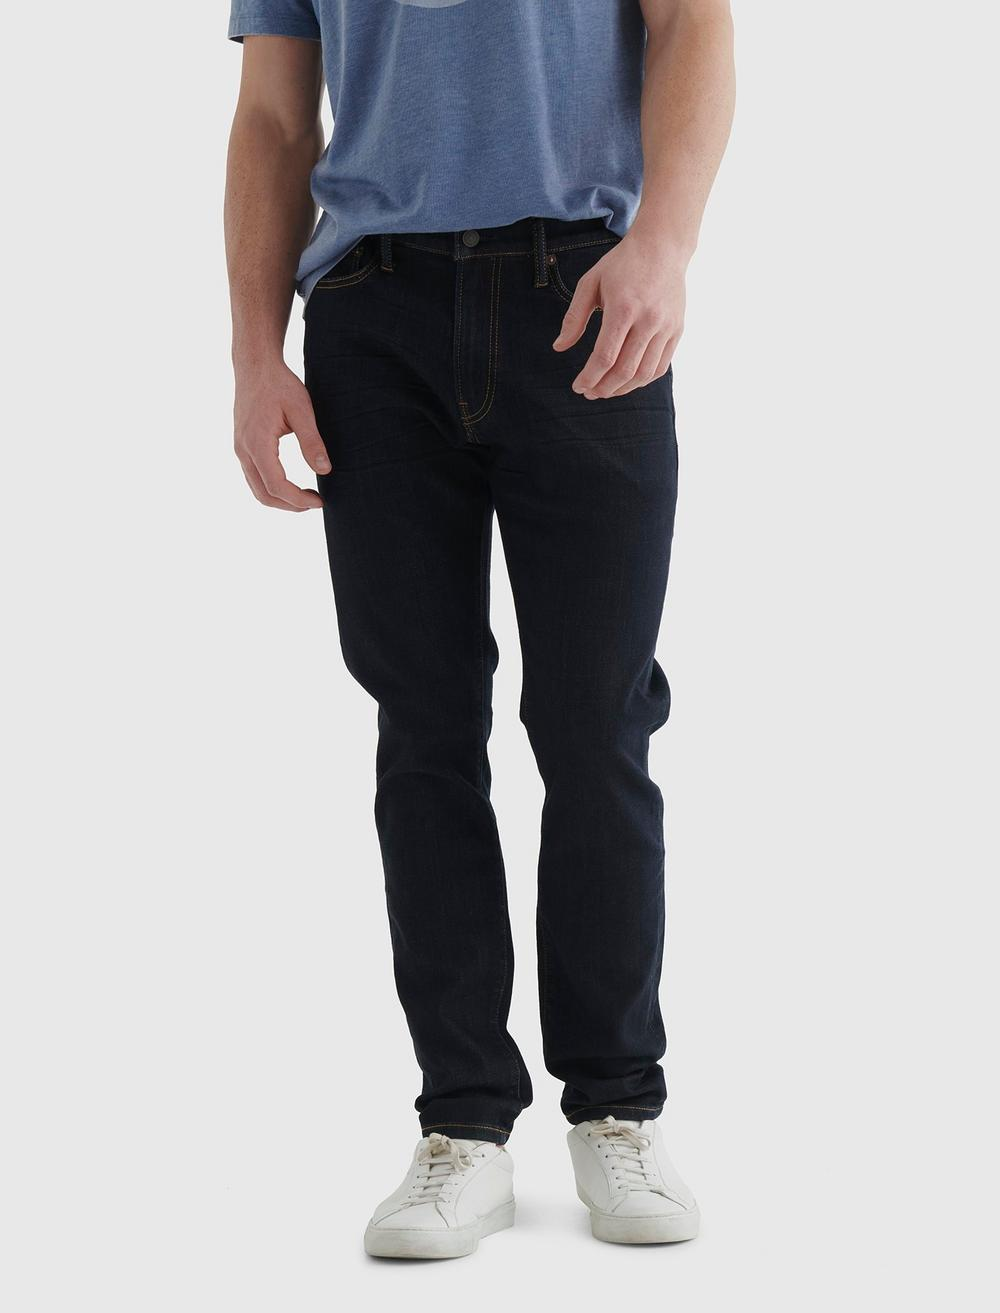 411 ATHLETIC TAPER COOLMAX STRETCH JEAN, image 2